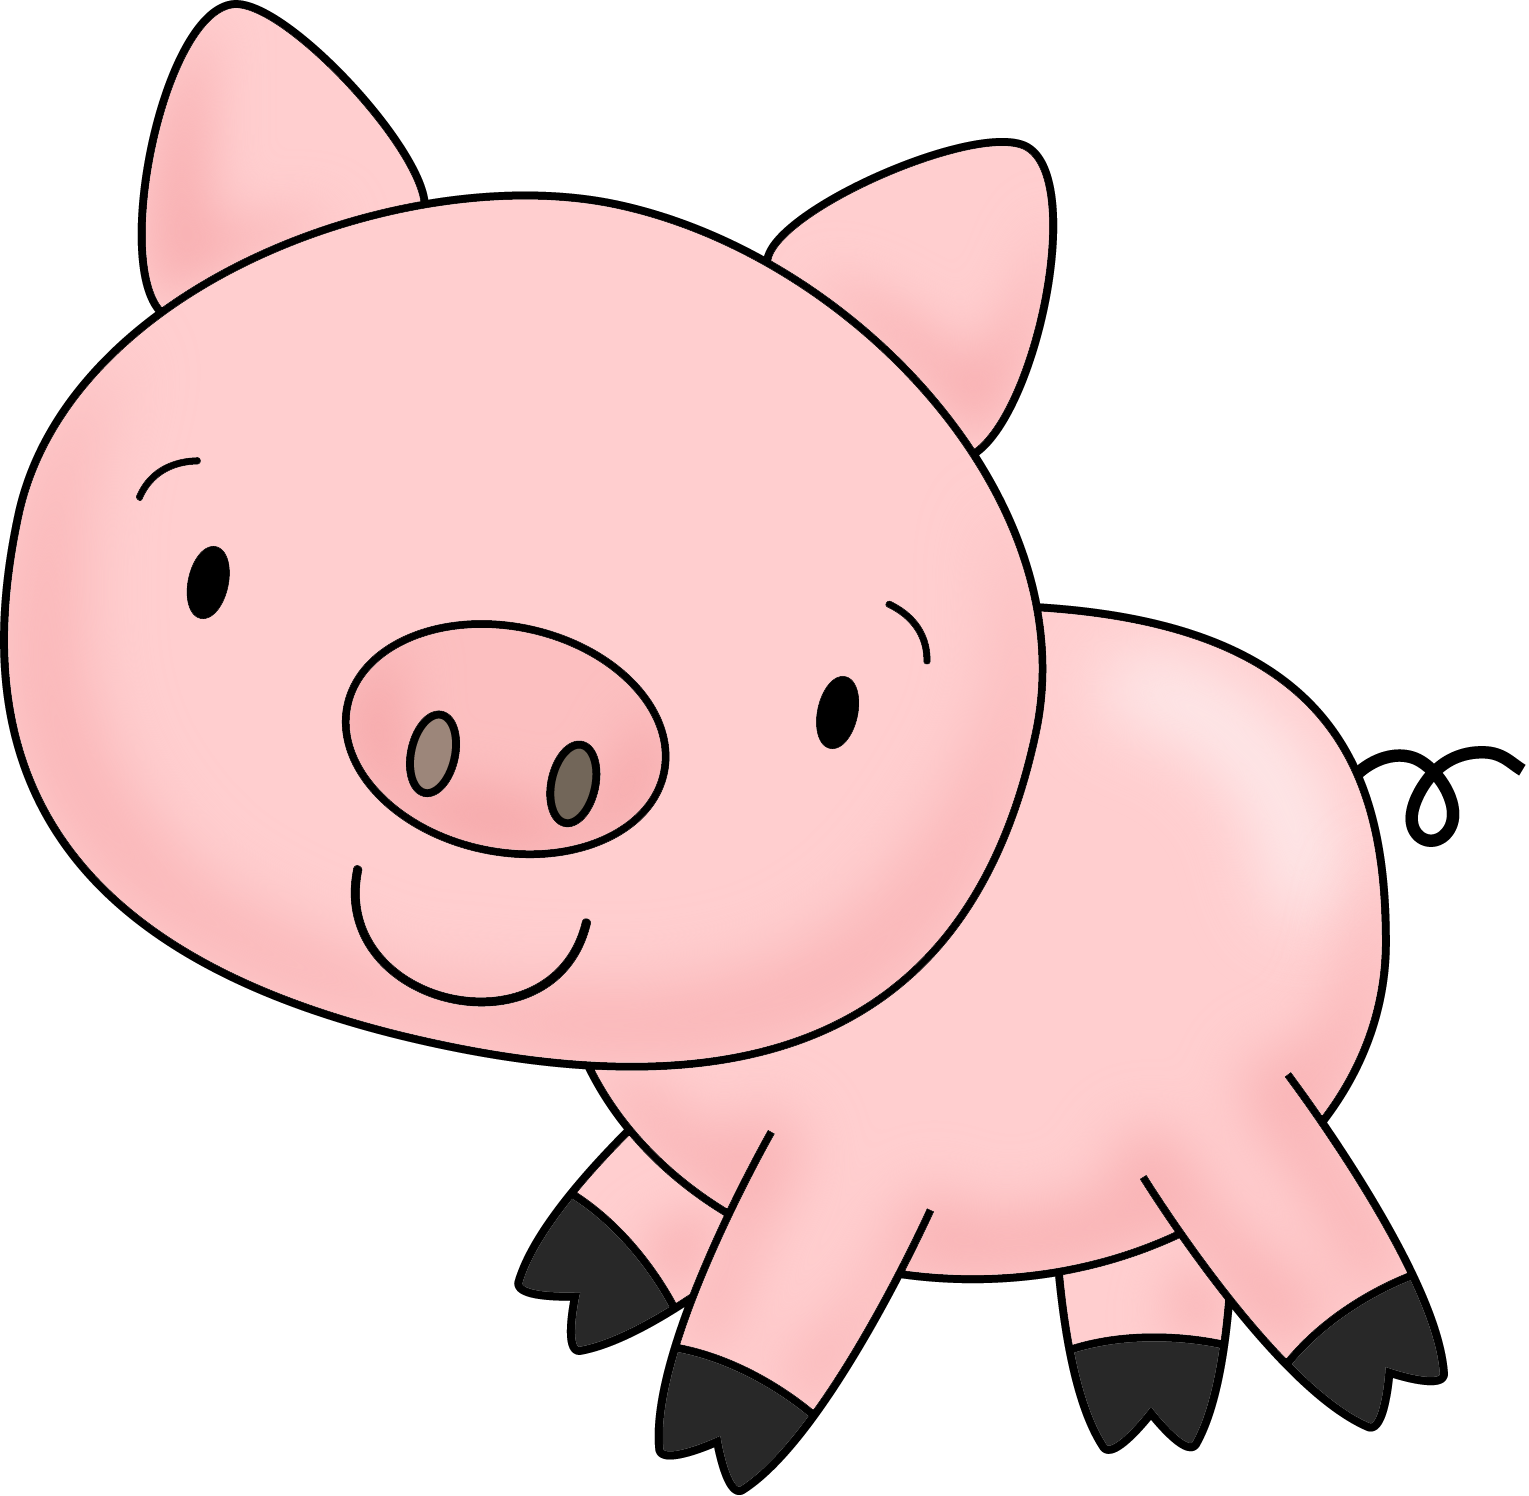 image library Charlottes at getdrawings com. Charlotte's web clipart